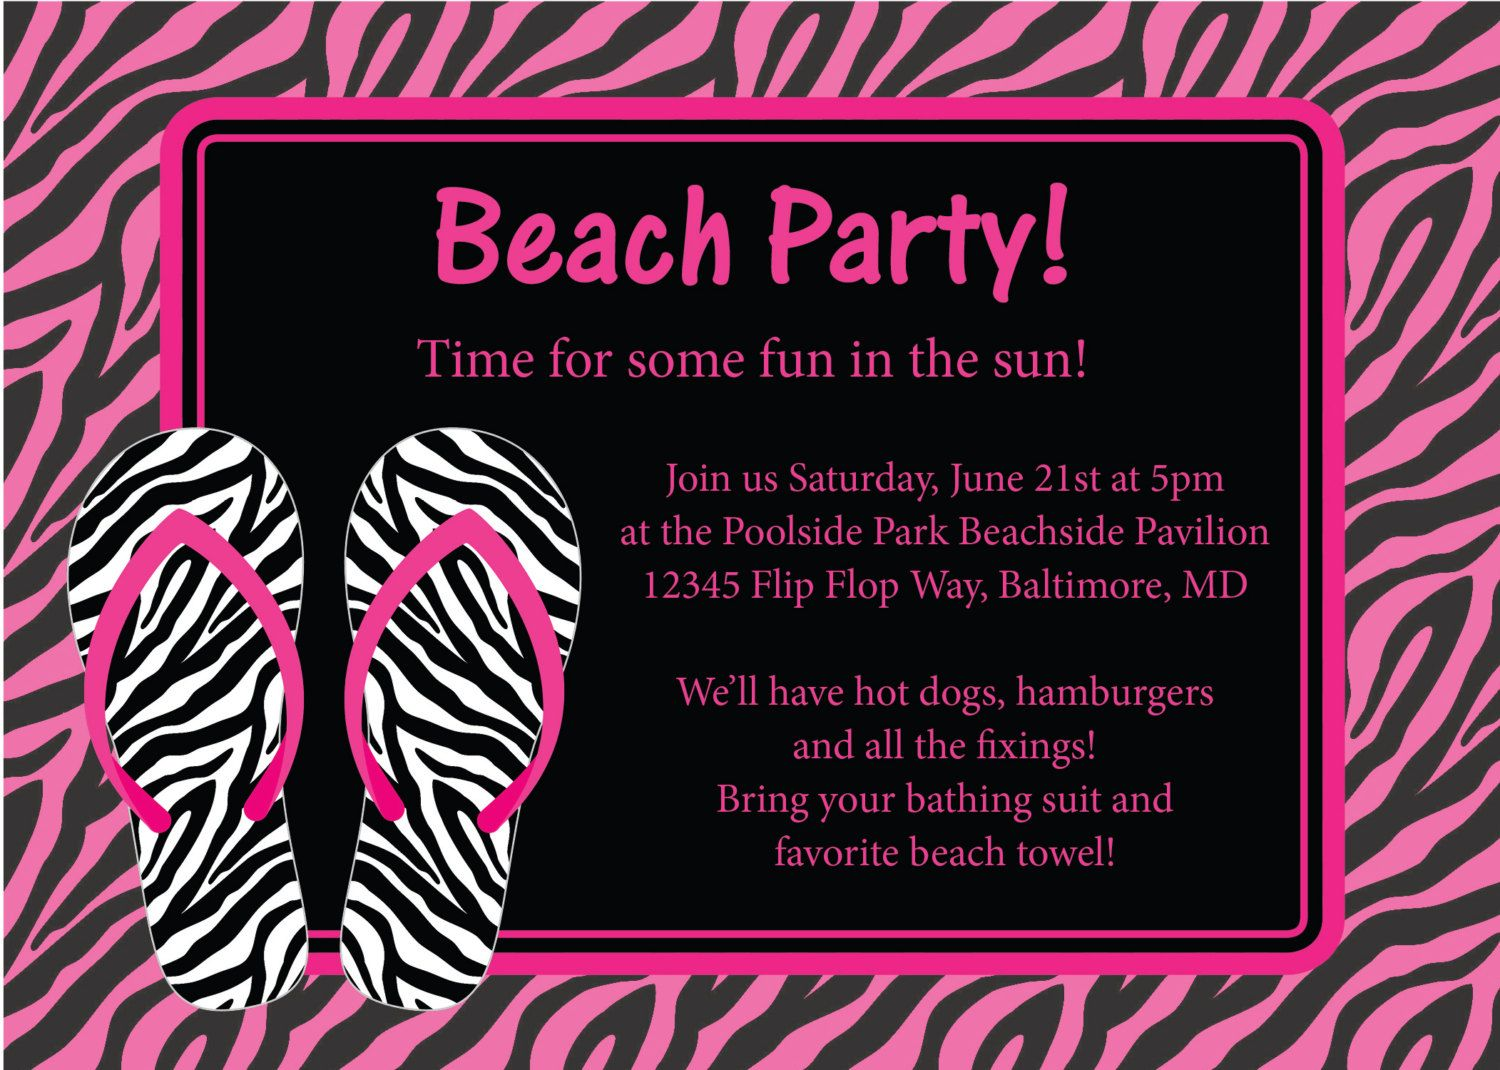 Beach Party Invitation Birthday Bachelorette by CowPrintDesigns ...